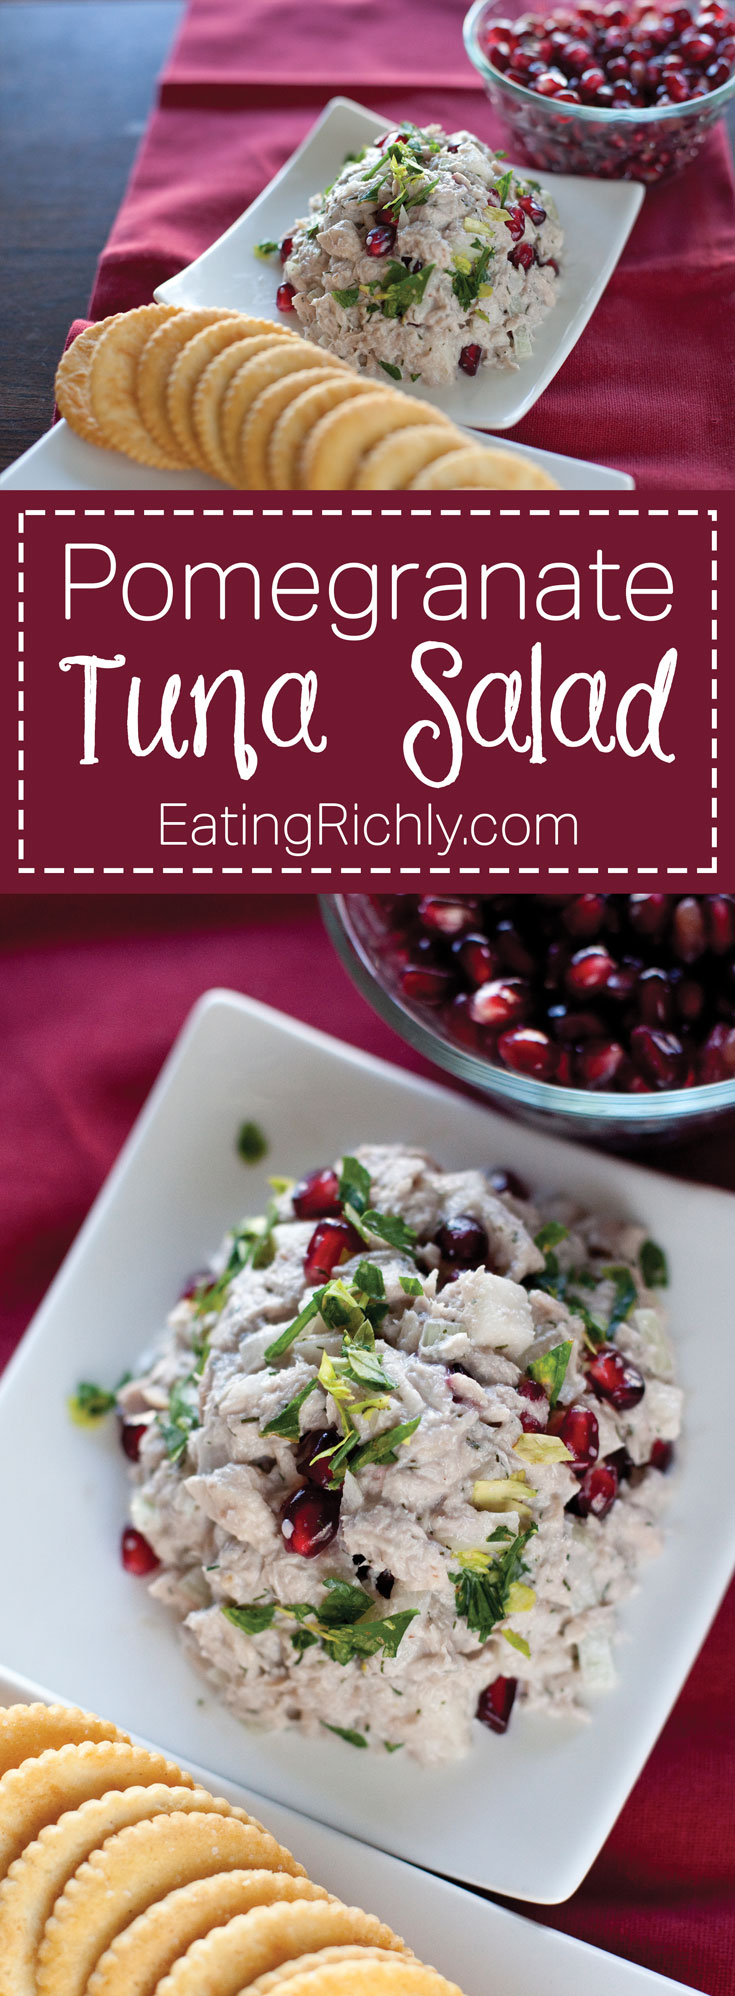 This pomegranate tuna salad recipe turns an old favorite into an exciting new treat. From EatingRichly.com